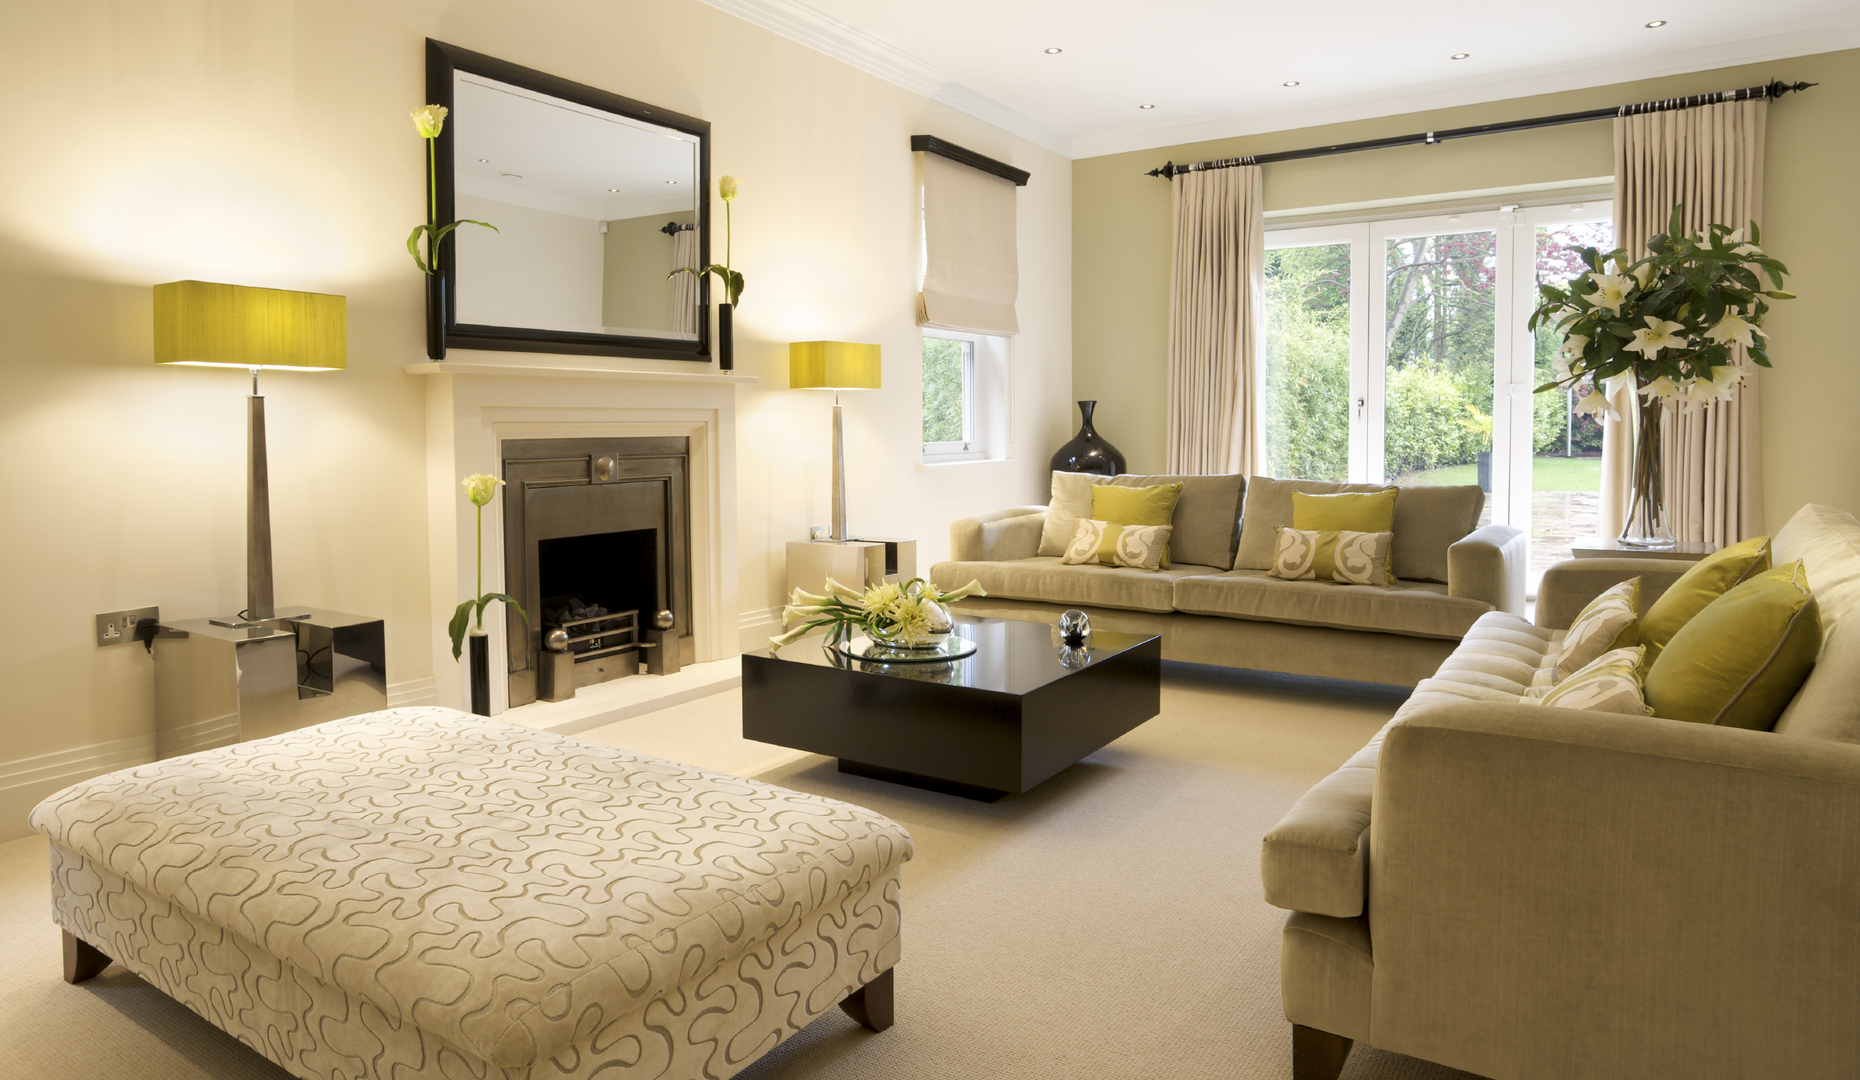 Interior design staging courses for Interior design and staging